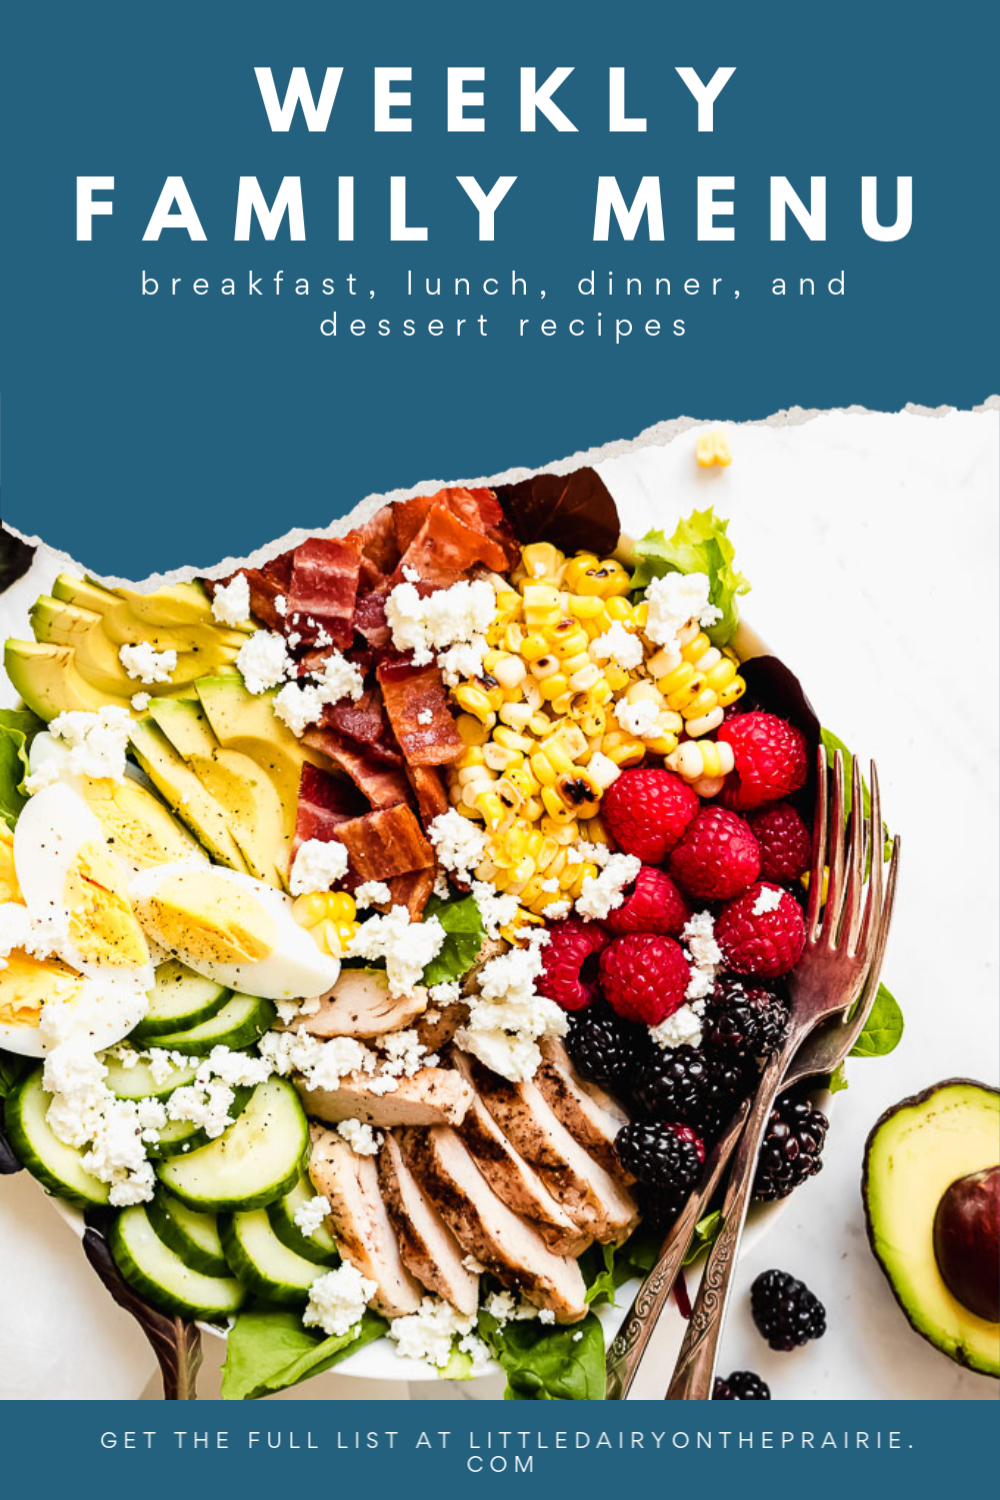 an image with a main dish salad and text